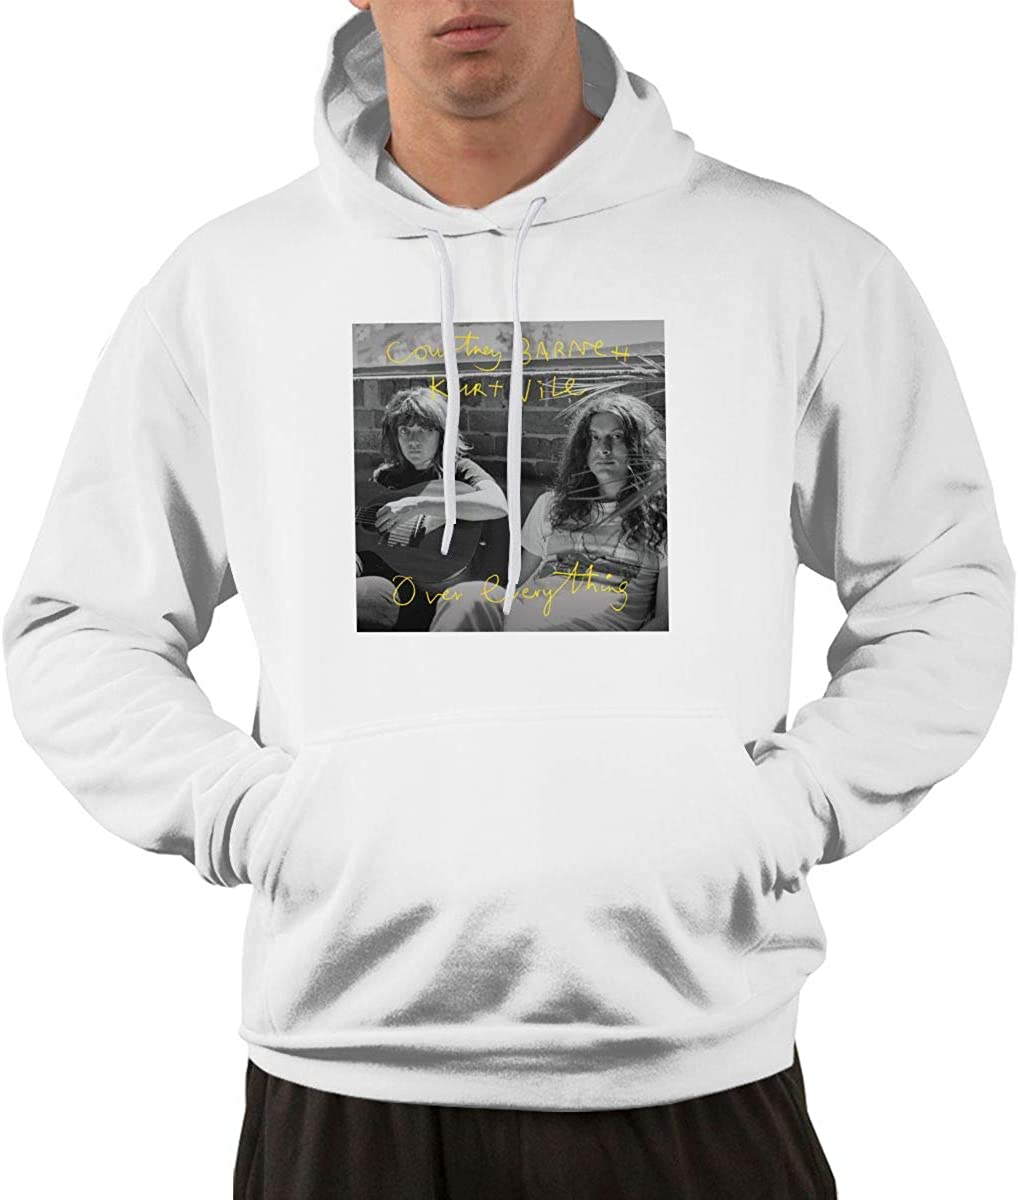 Duan Wuqing Courtney Barnett Over Everything Fashion Mens Hoodie Black